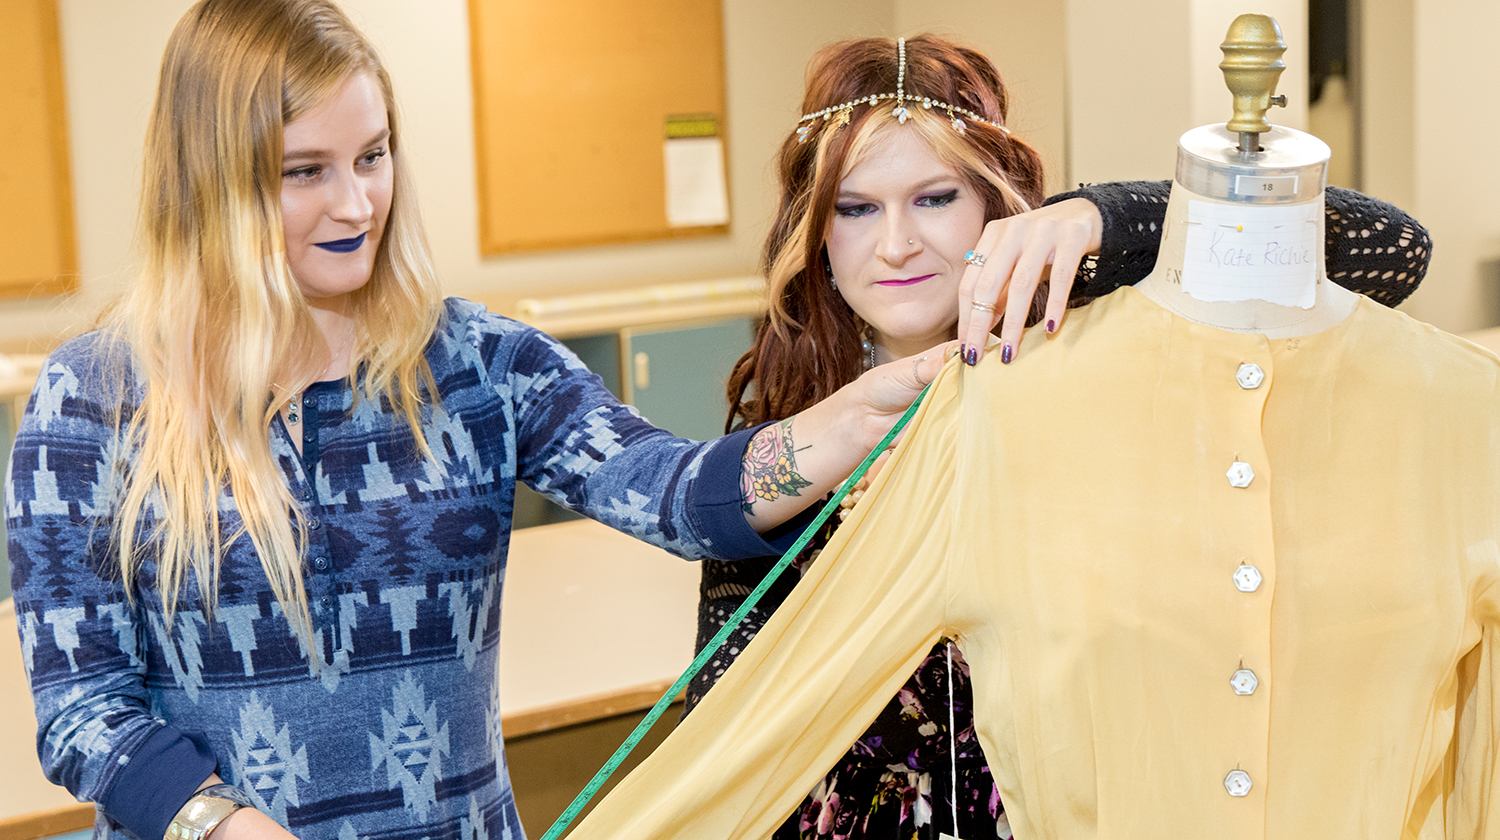 Two apparel design students measure a garment.